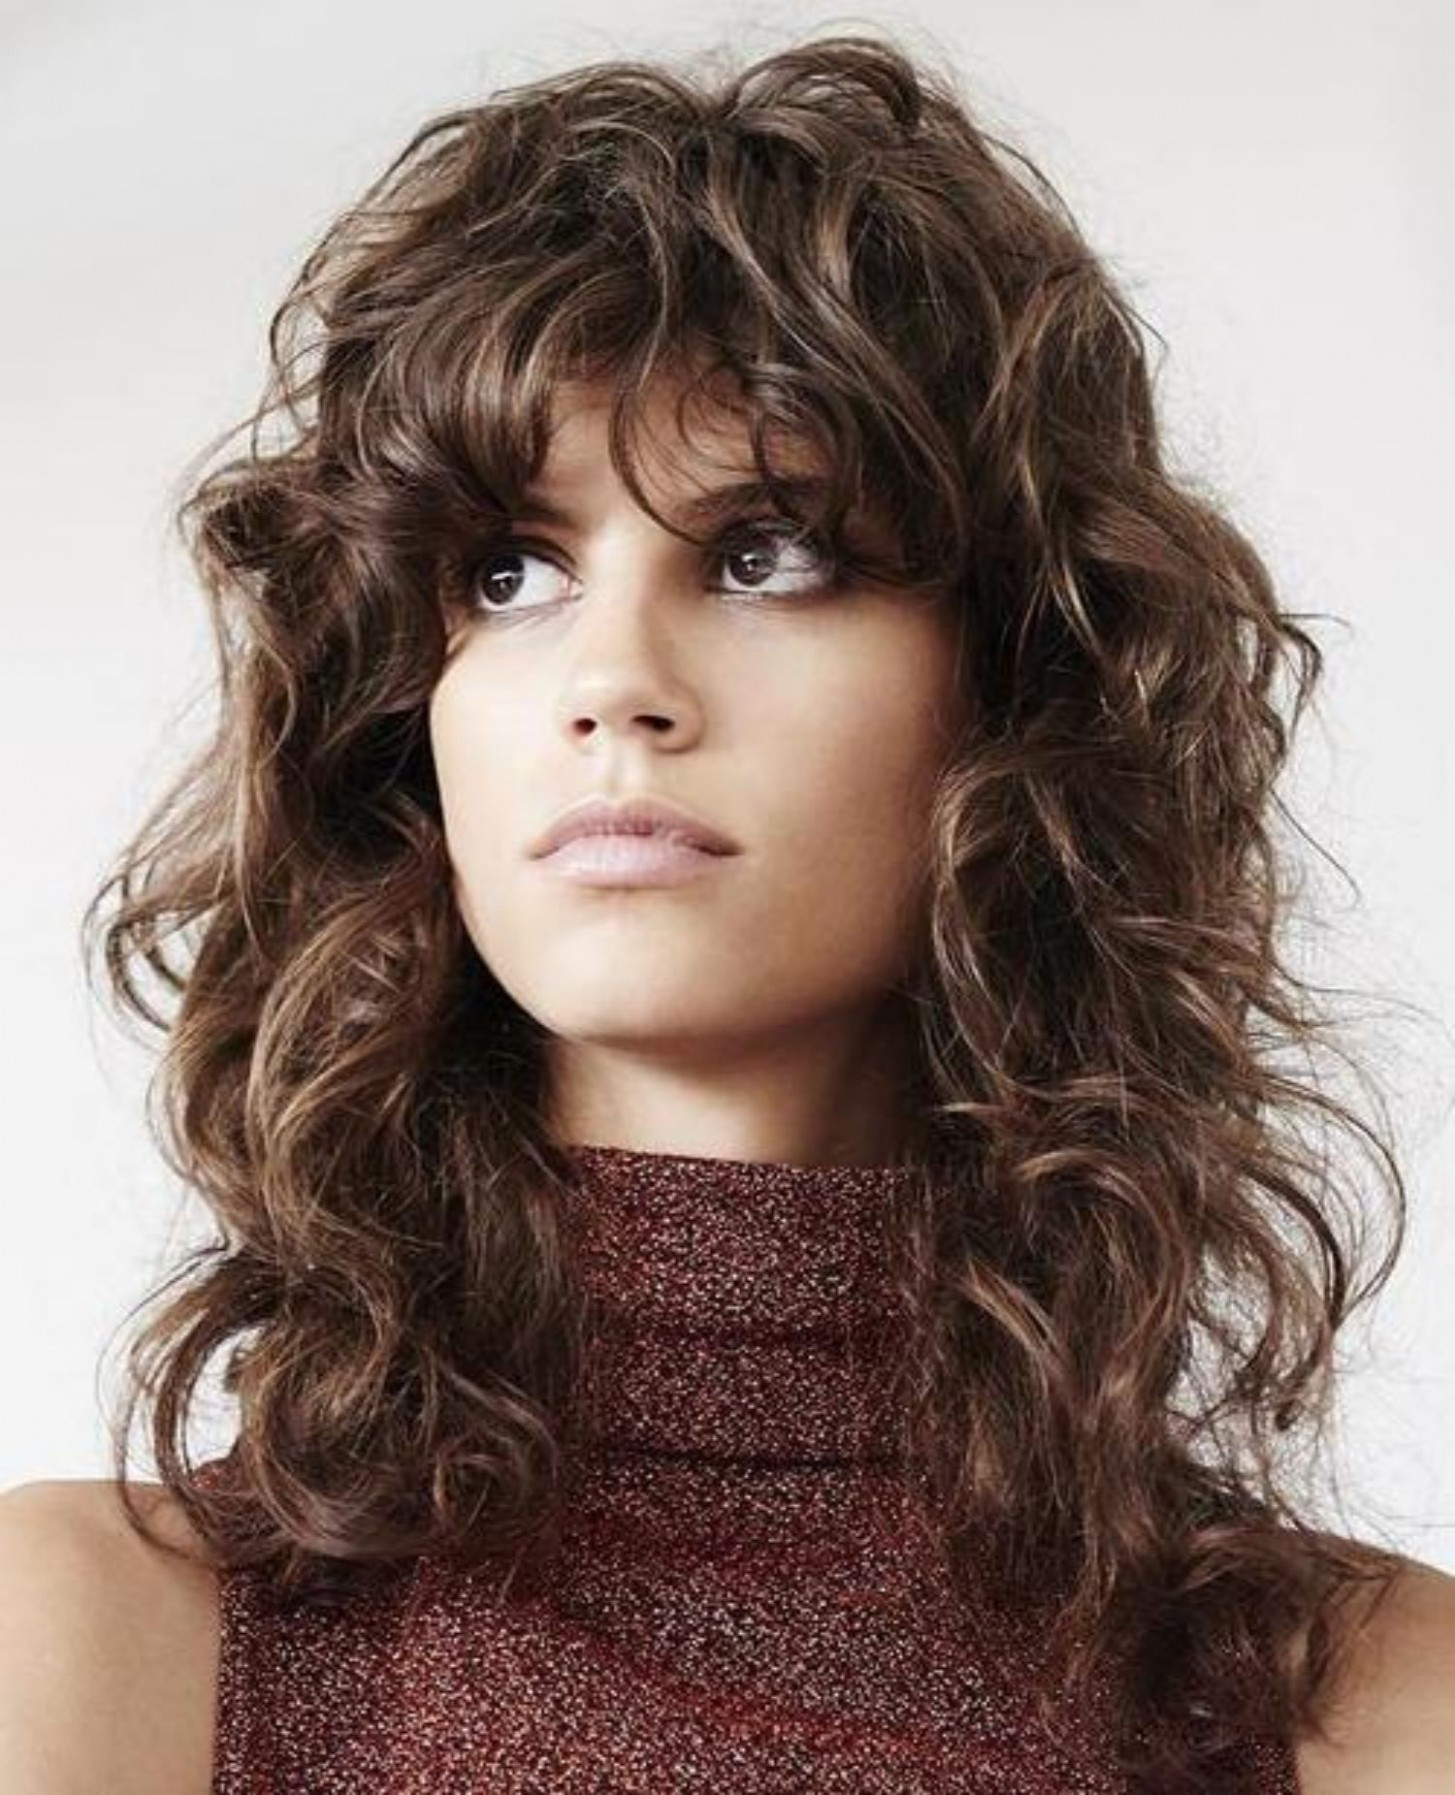 10 Lovely Long Shag Haircuts For Effortless Stylish Looks Long Long Curly Shaggy Hairstyles